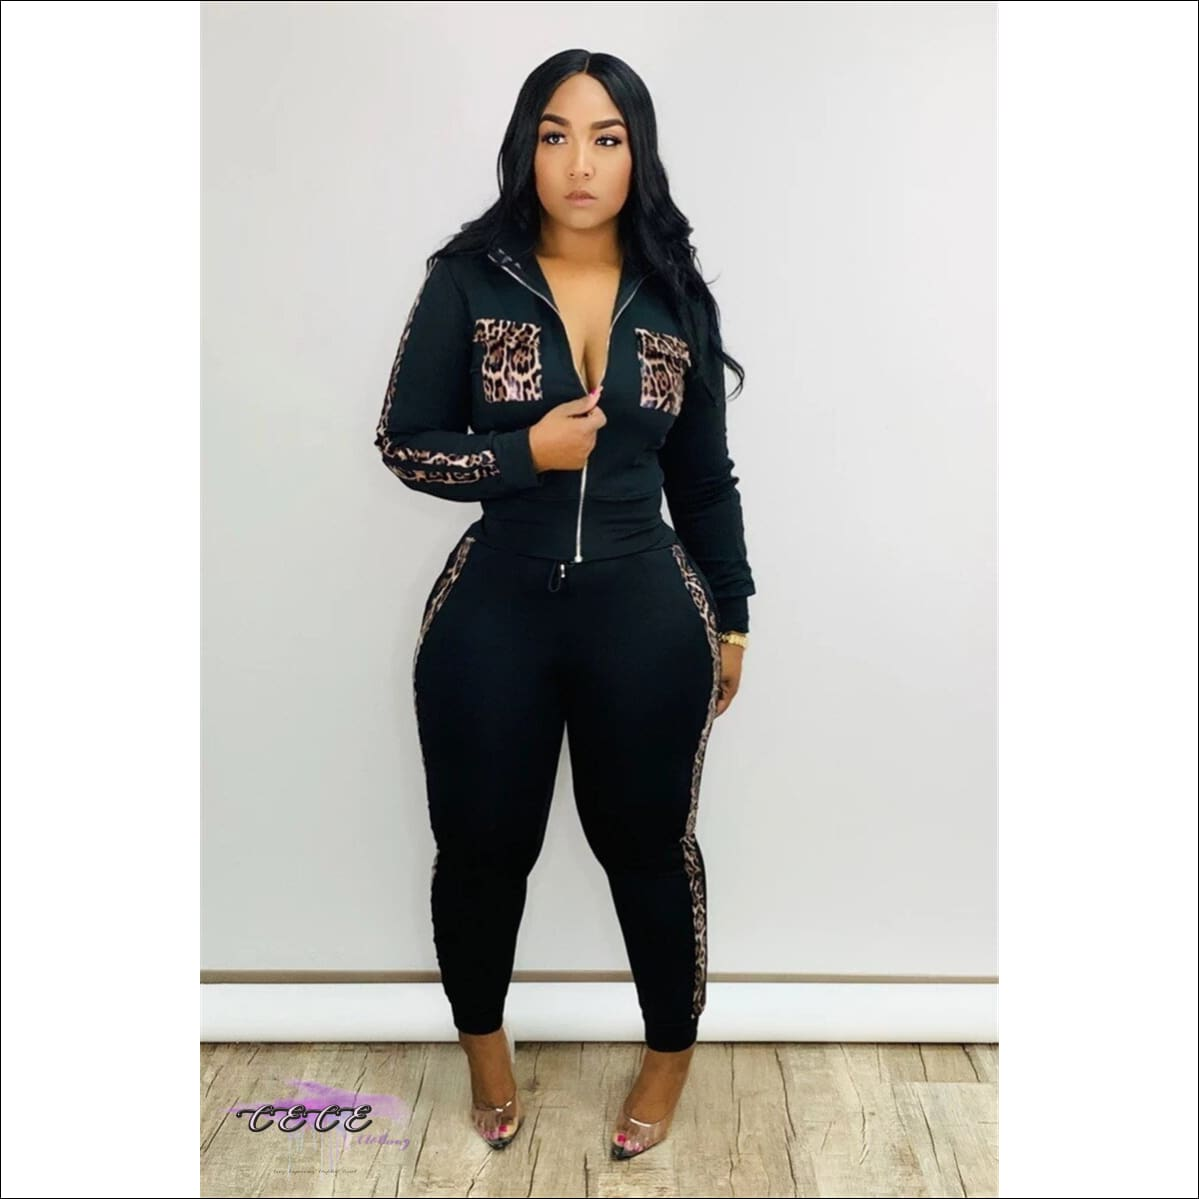 Bad & Curvy Leopard Print Two Piece Black Tracksuit 2X